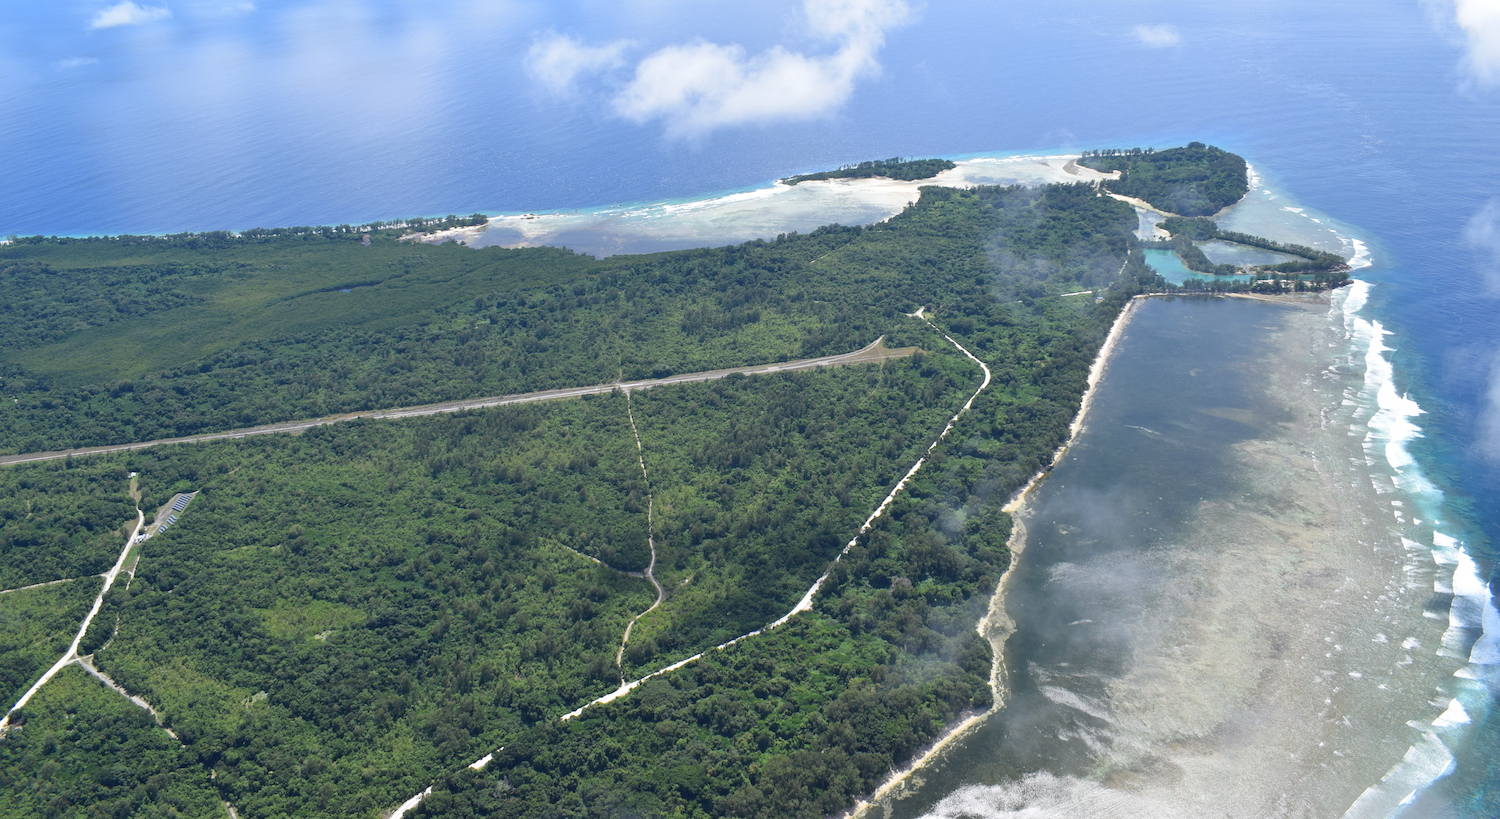 Aerial view of Peleliu battlefield in Palau